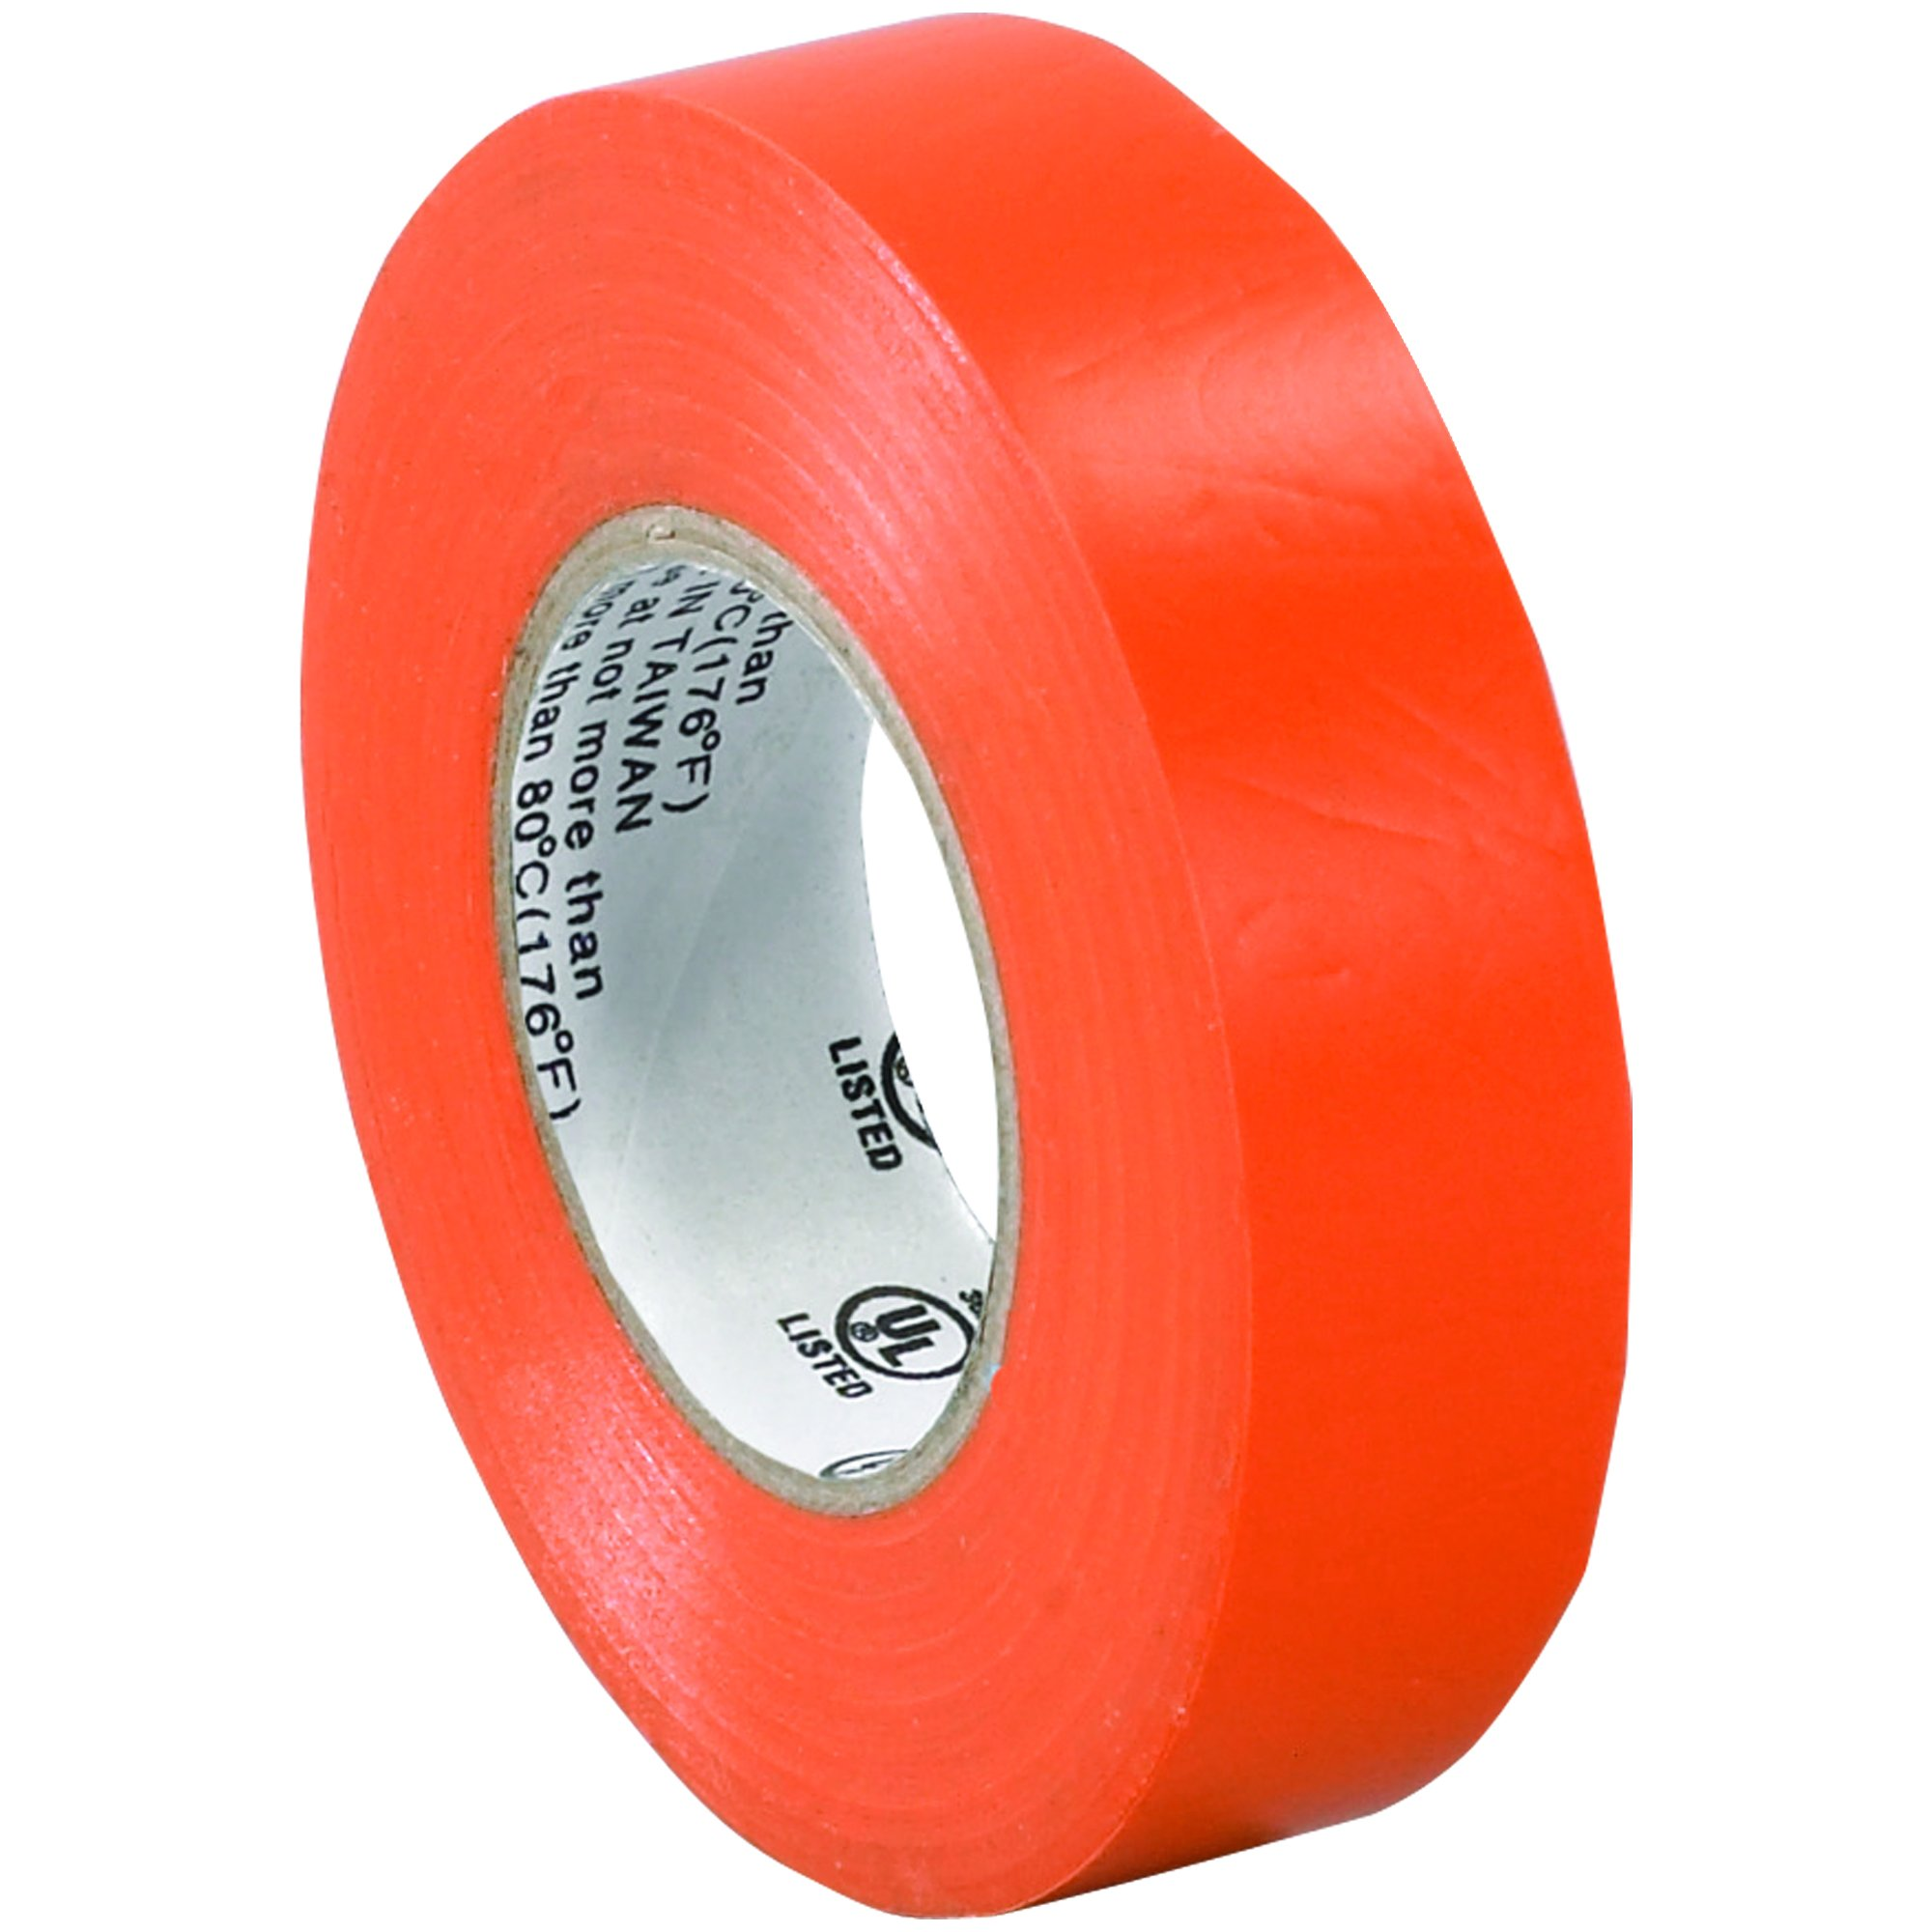 BOX BT96461810PKA Orange Electrical Tape, 20 yd. Length, 3/4'' (Pack of 10)